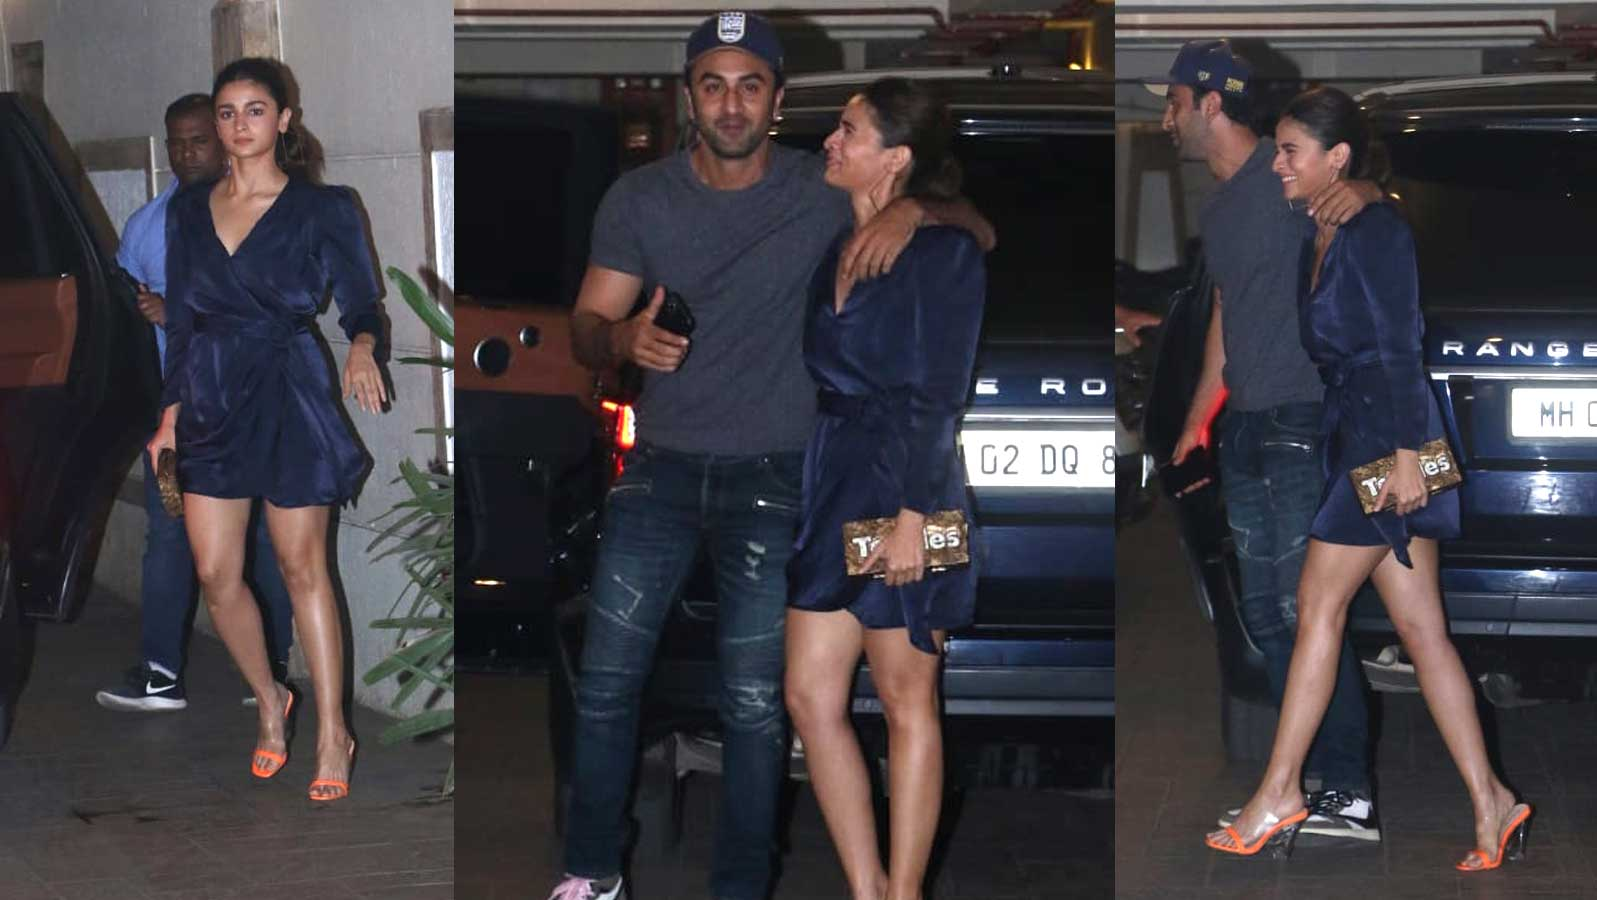 Alia Bhatt and Ranbir Kapoor make for a dynamic couple as they get papped outside Kareena Kapoor Khan's residence